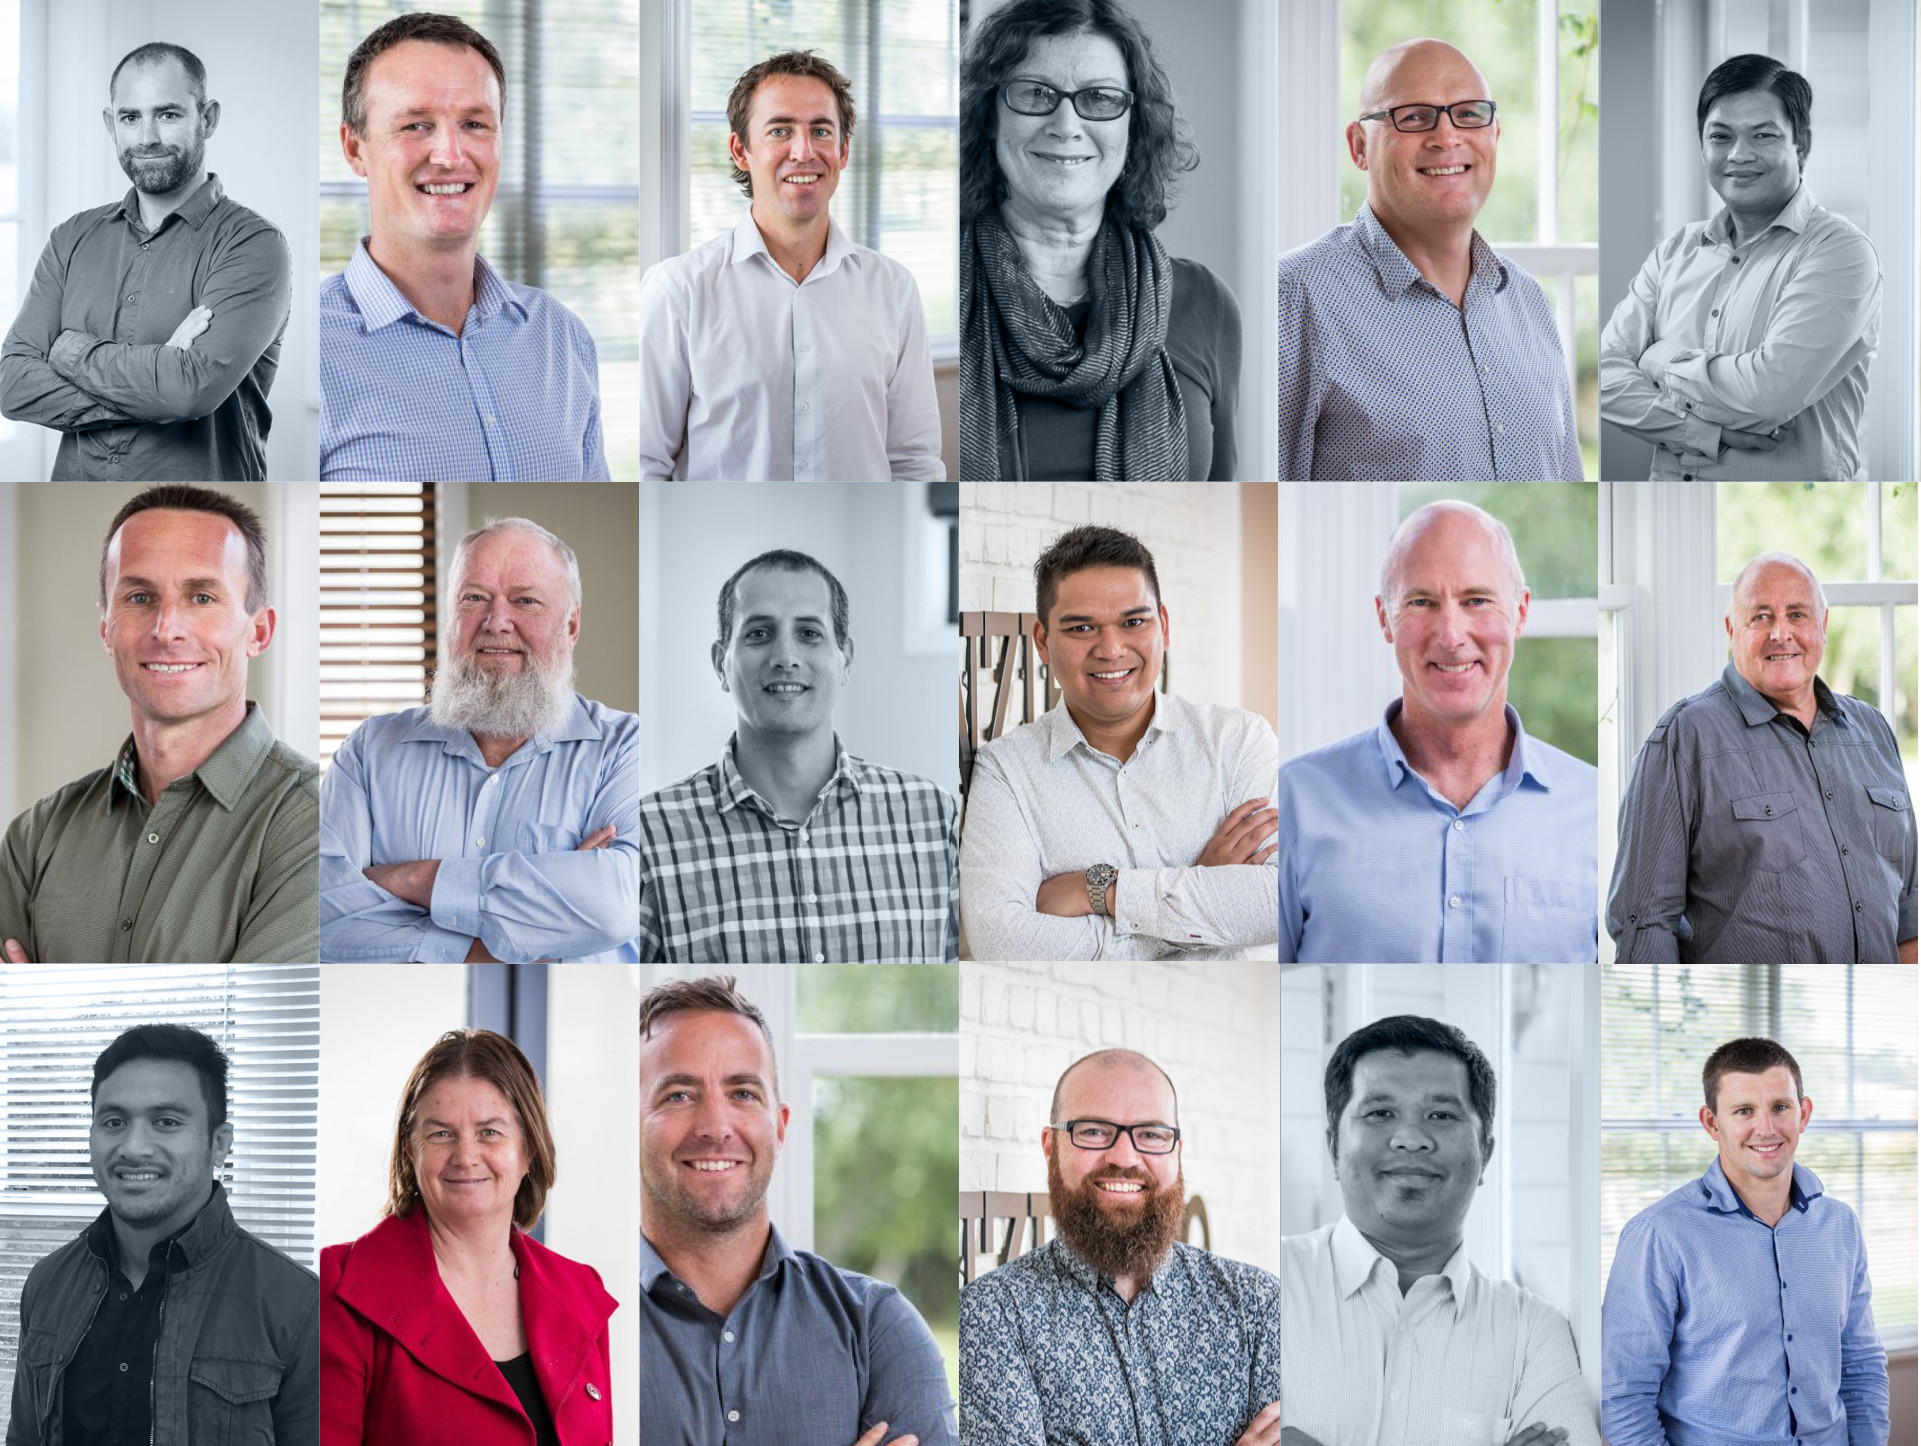 the team - PEOPLE. PASSION.PERFORMANCE.That's what makes McKenzie & Co different.Meet our team of experienced professionals.